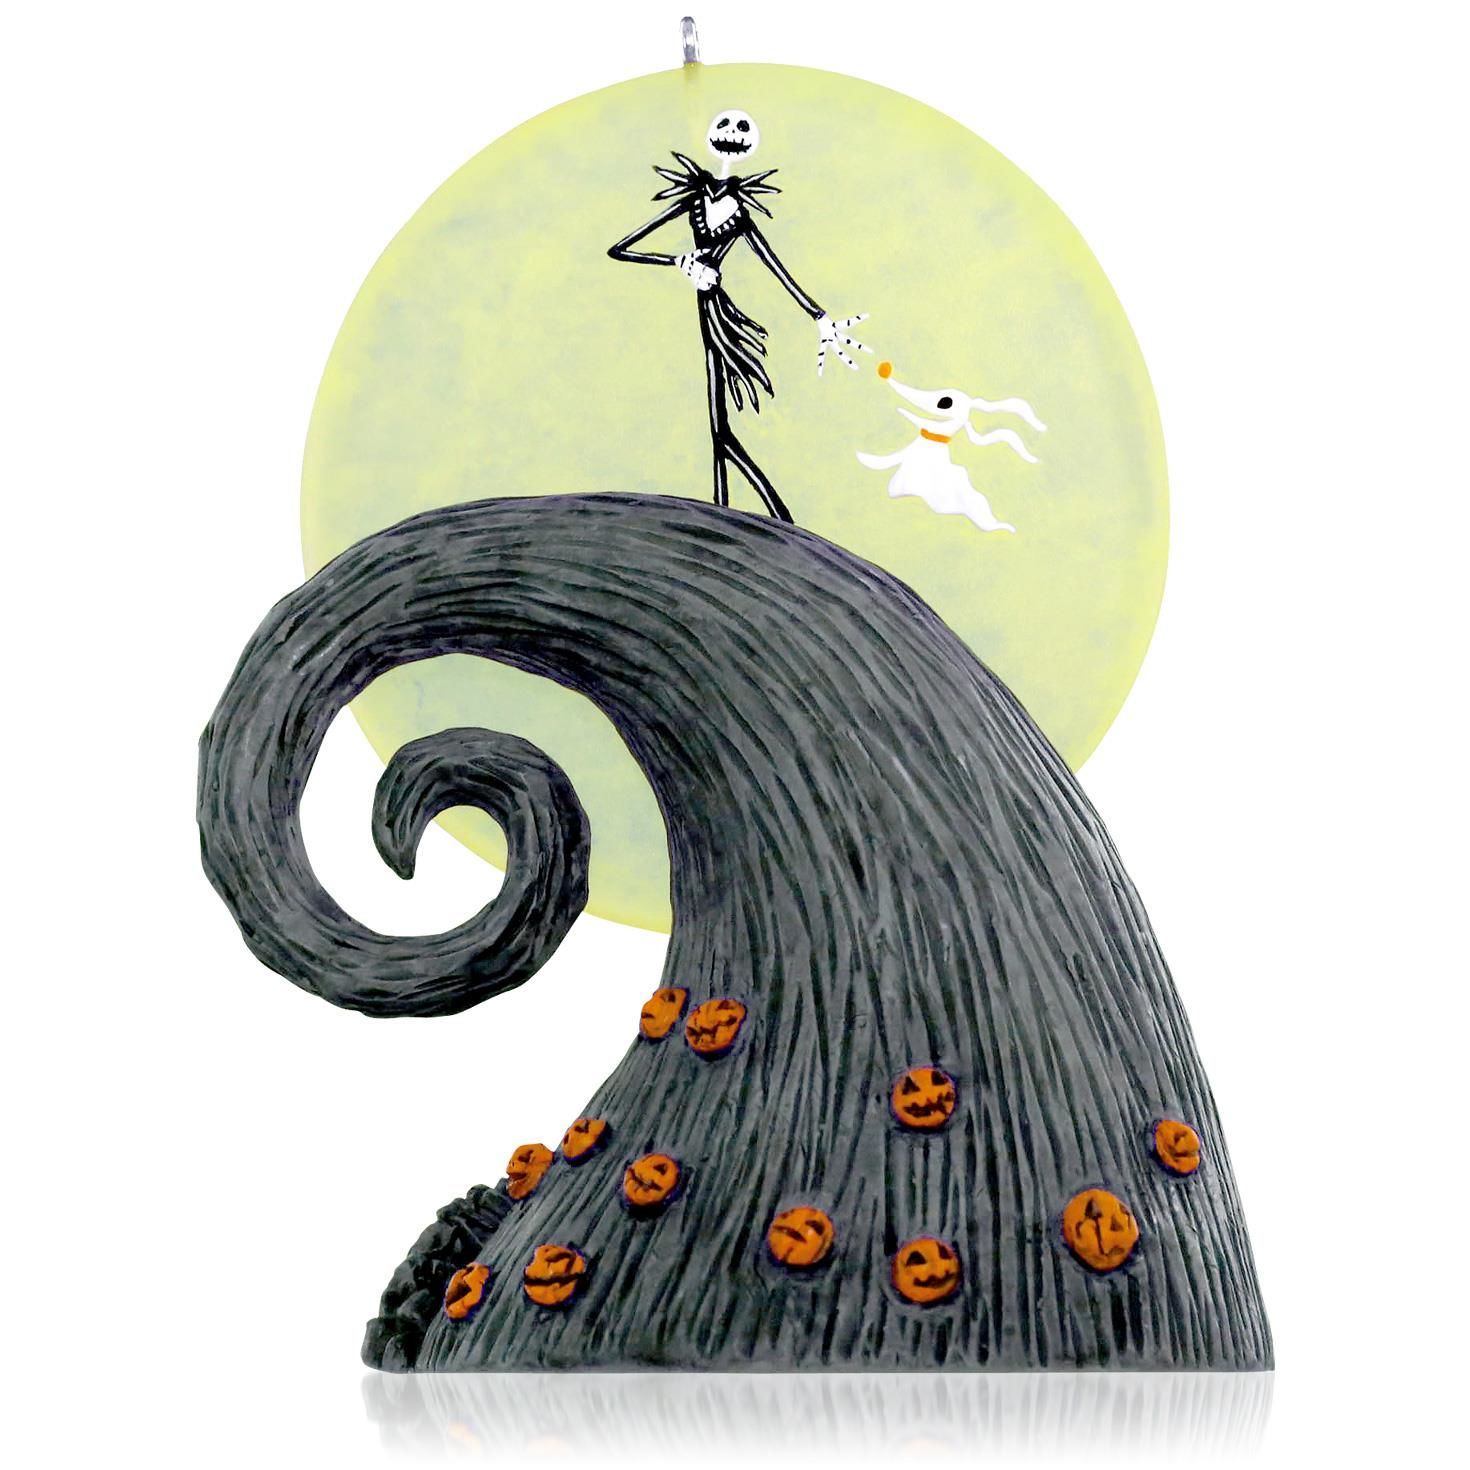 2015 Here Comes the Pumpkin King Hallmark Ornament - Hooked on ...